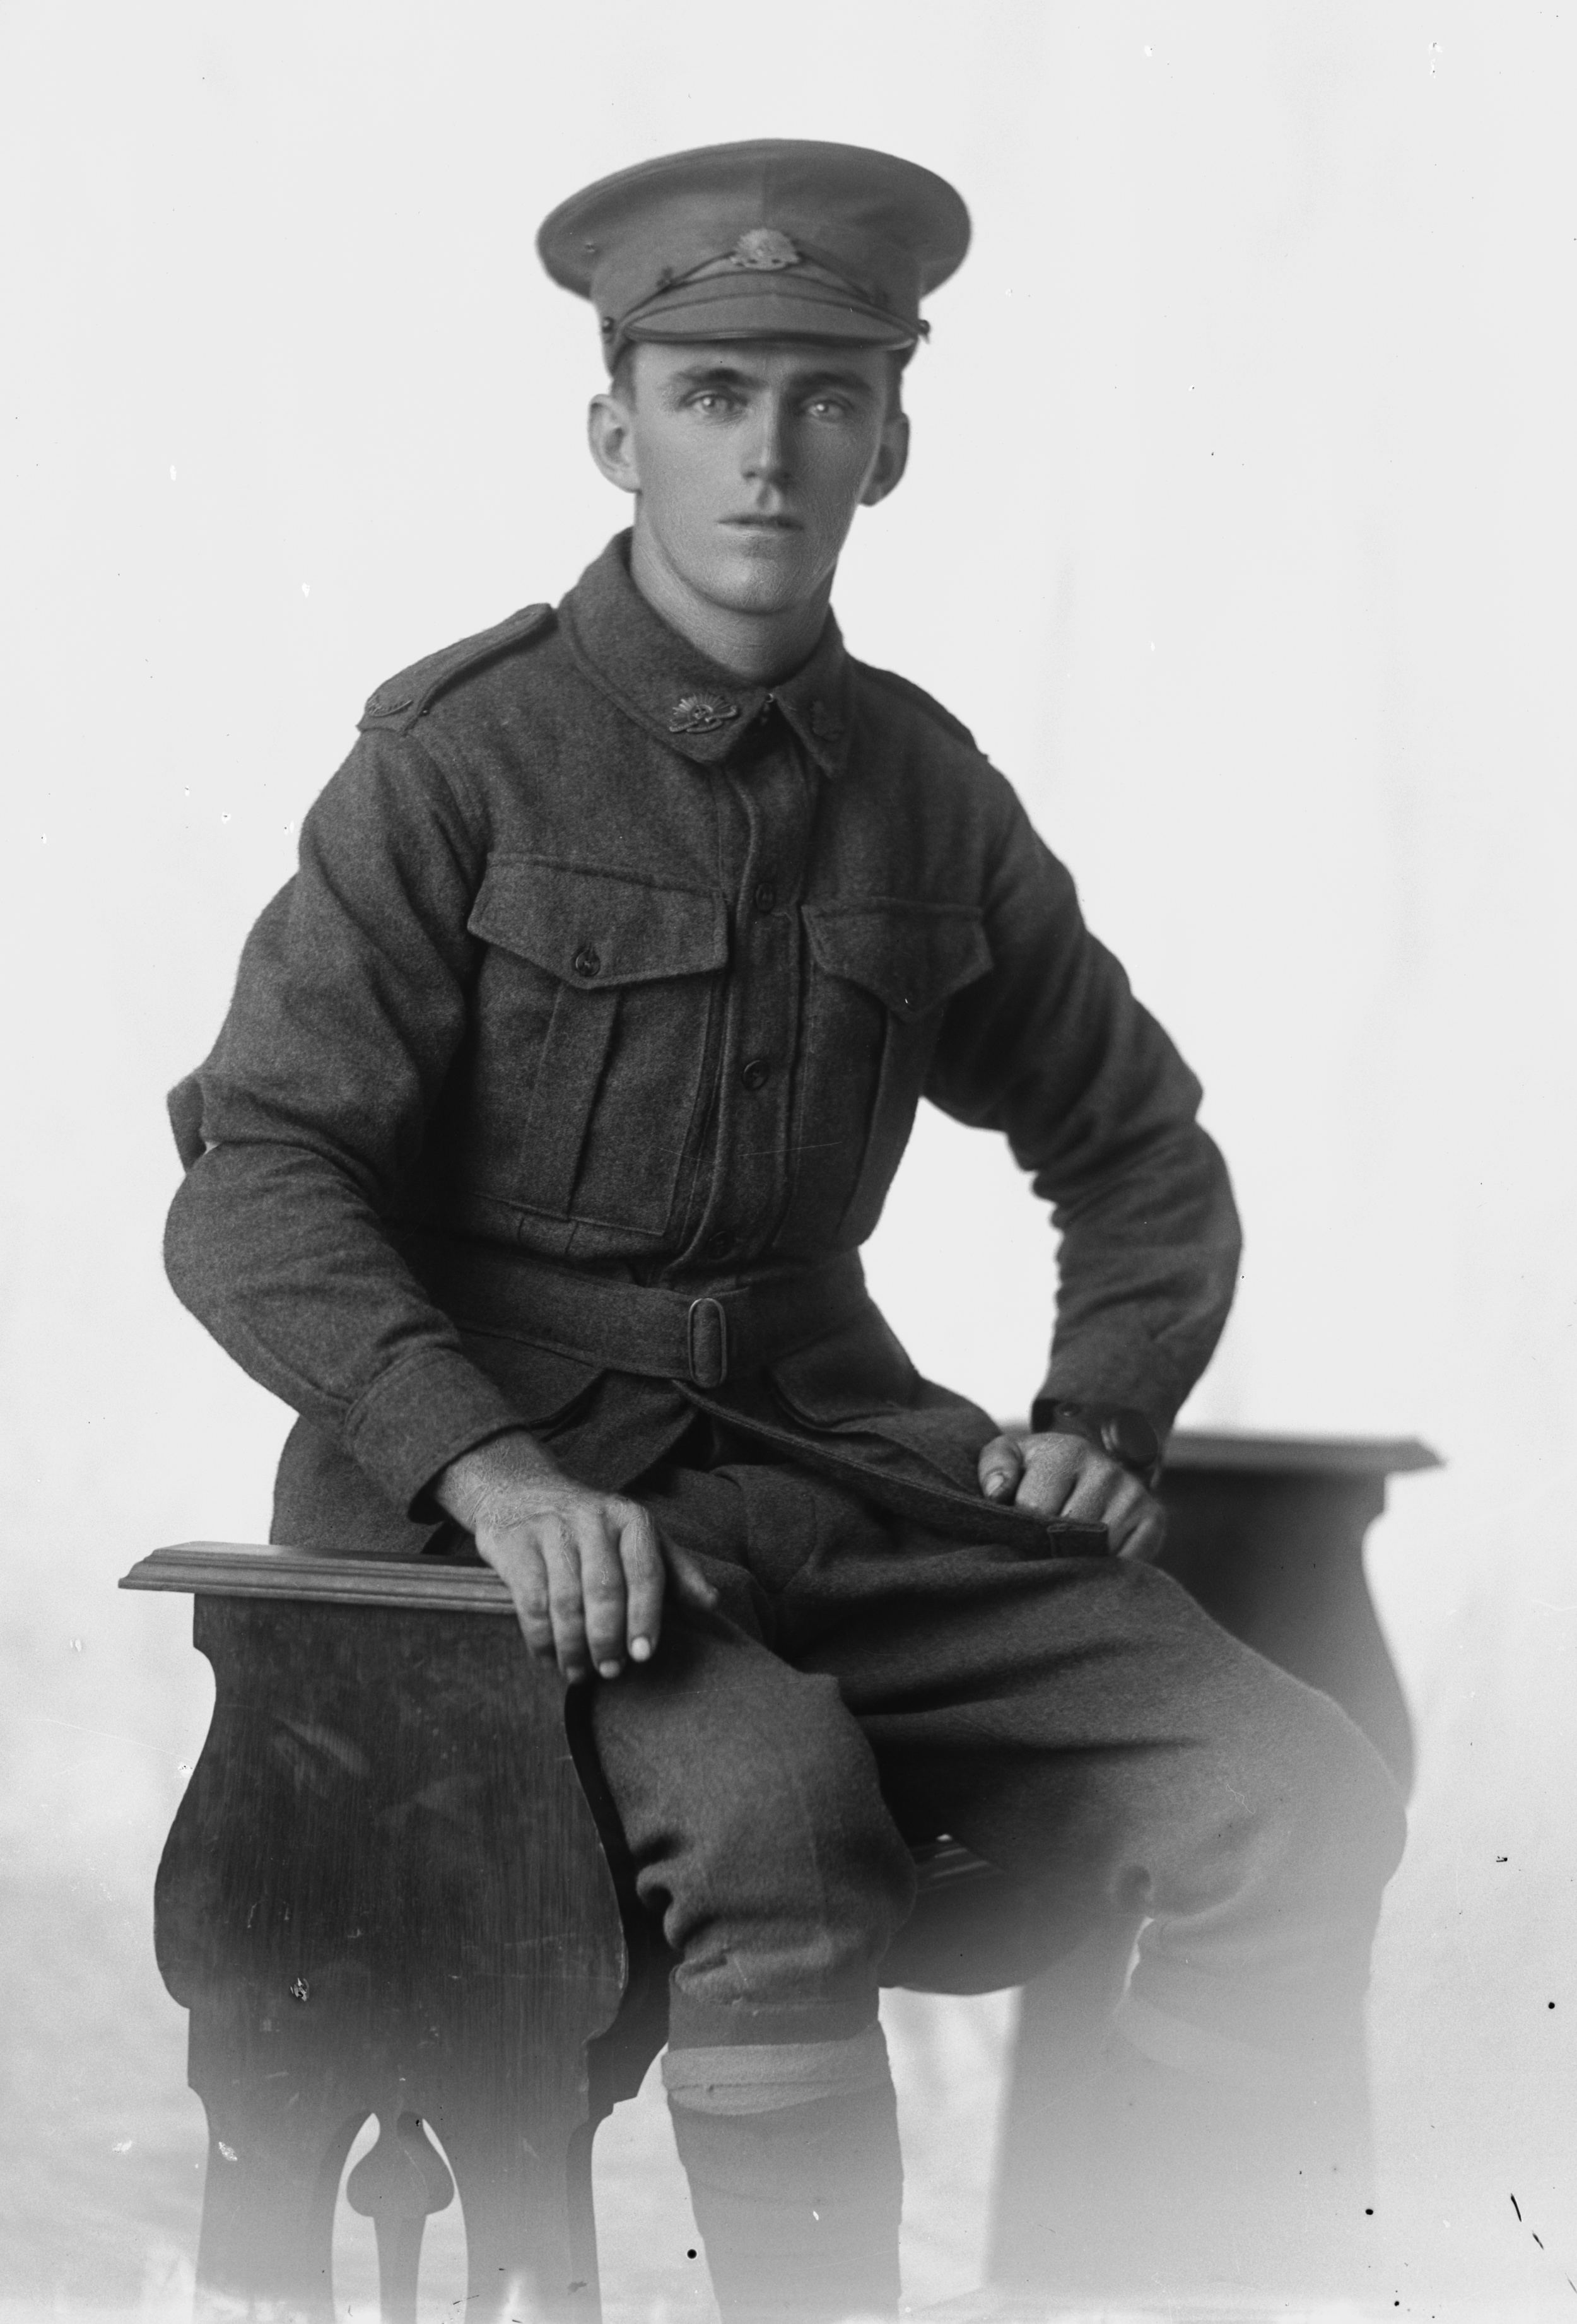 Photographed at the Dease Studio, 117 Barrack Street Perth WA Image courtesy of the State Library of Western Australia: 108408PD